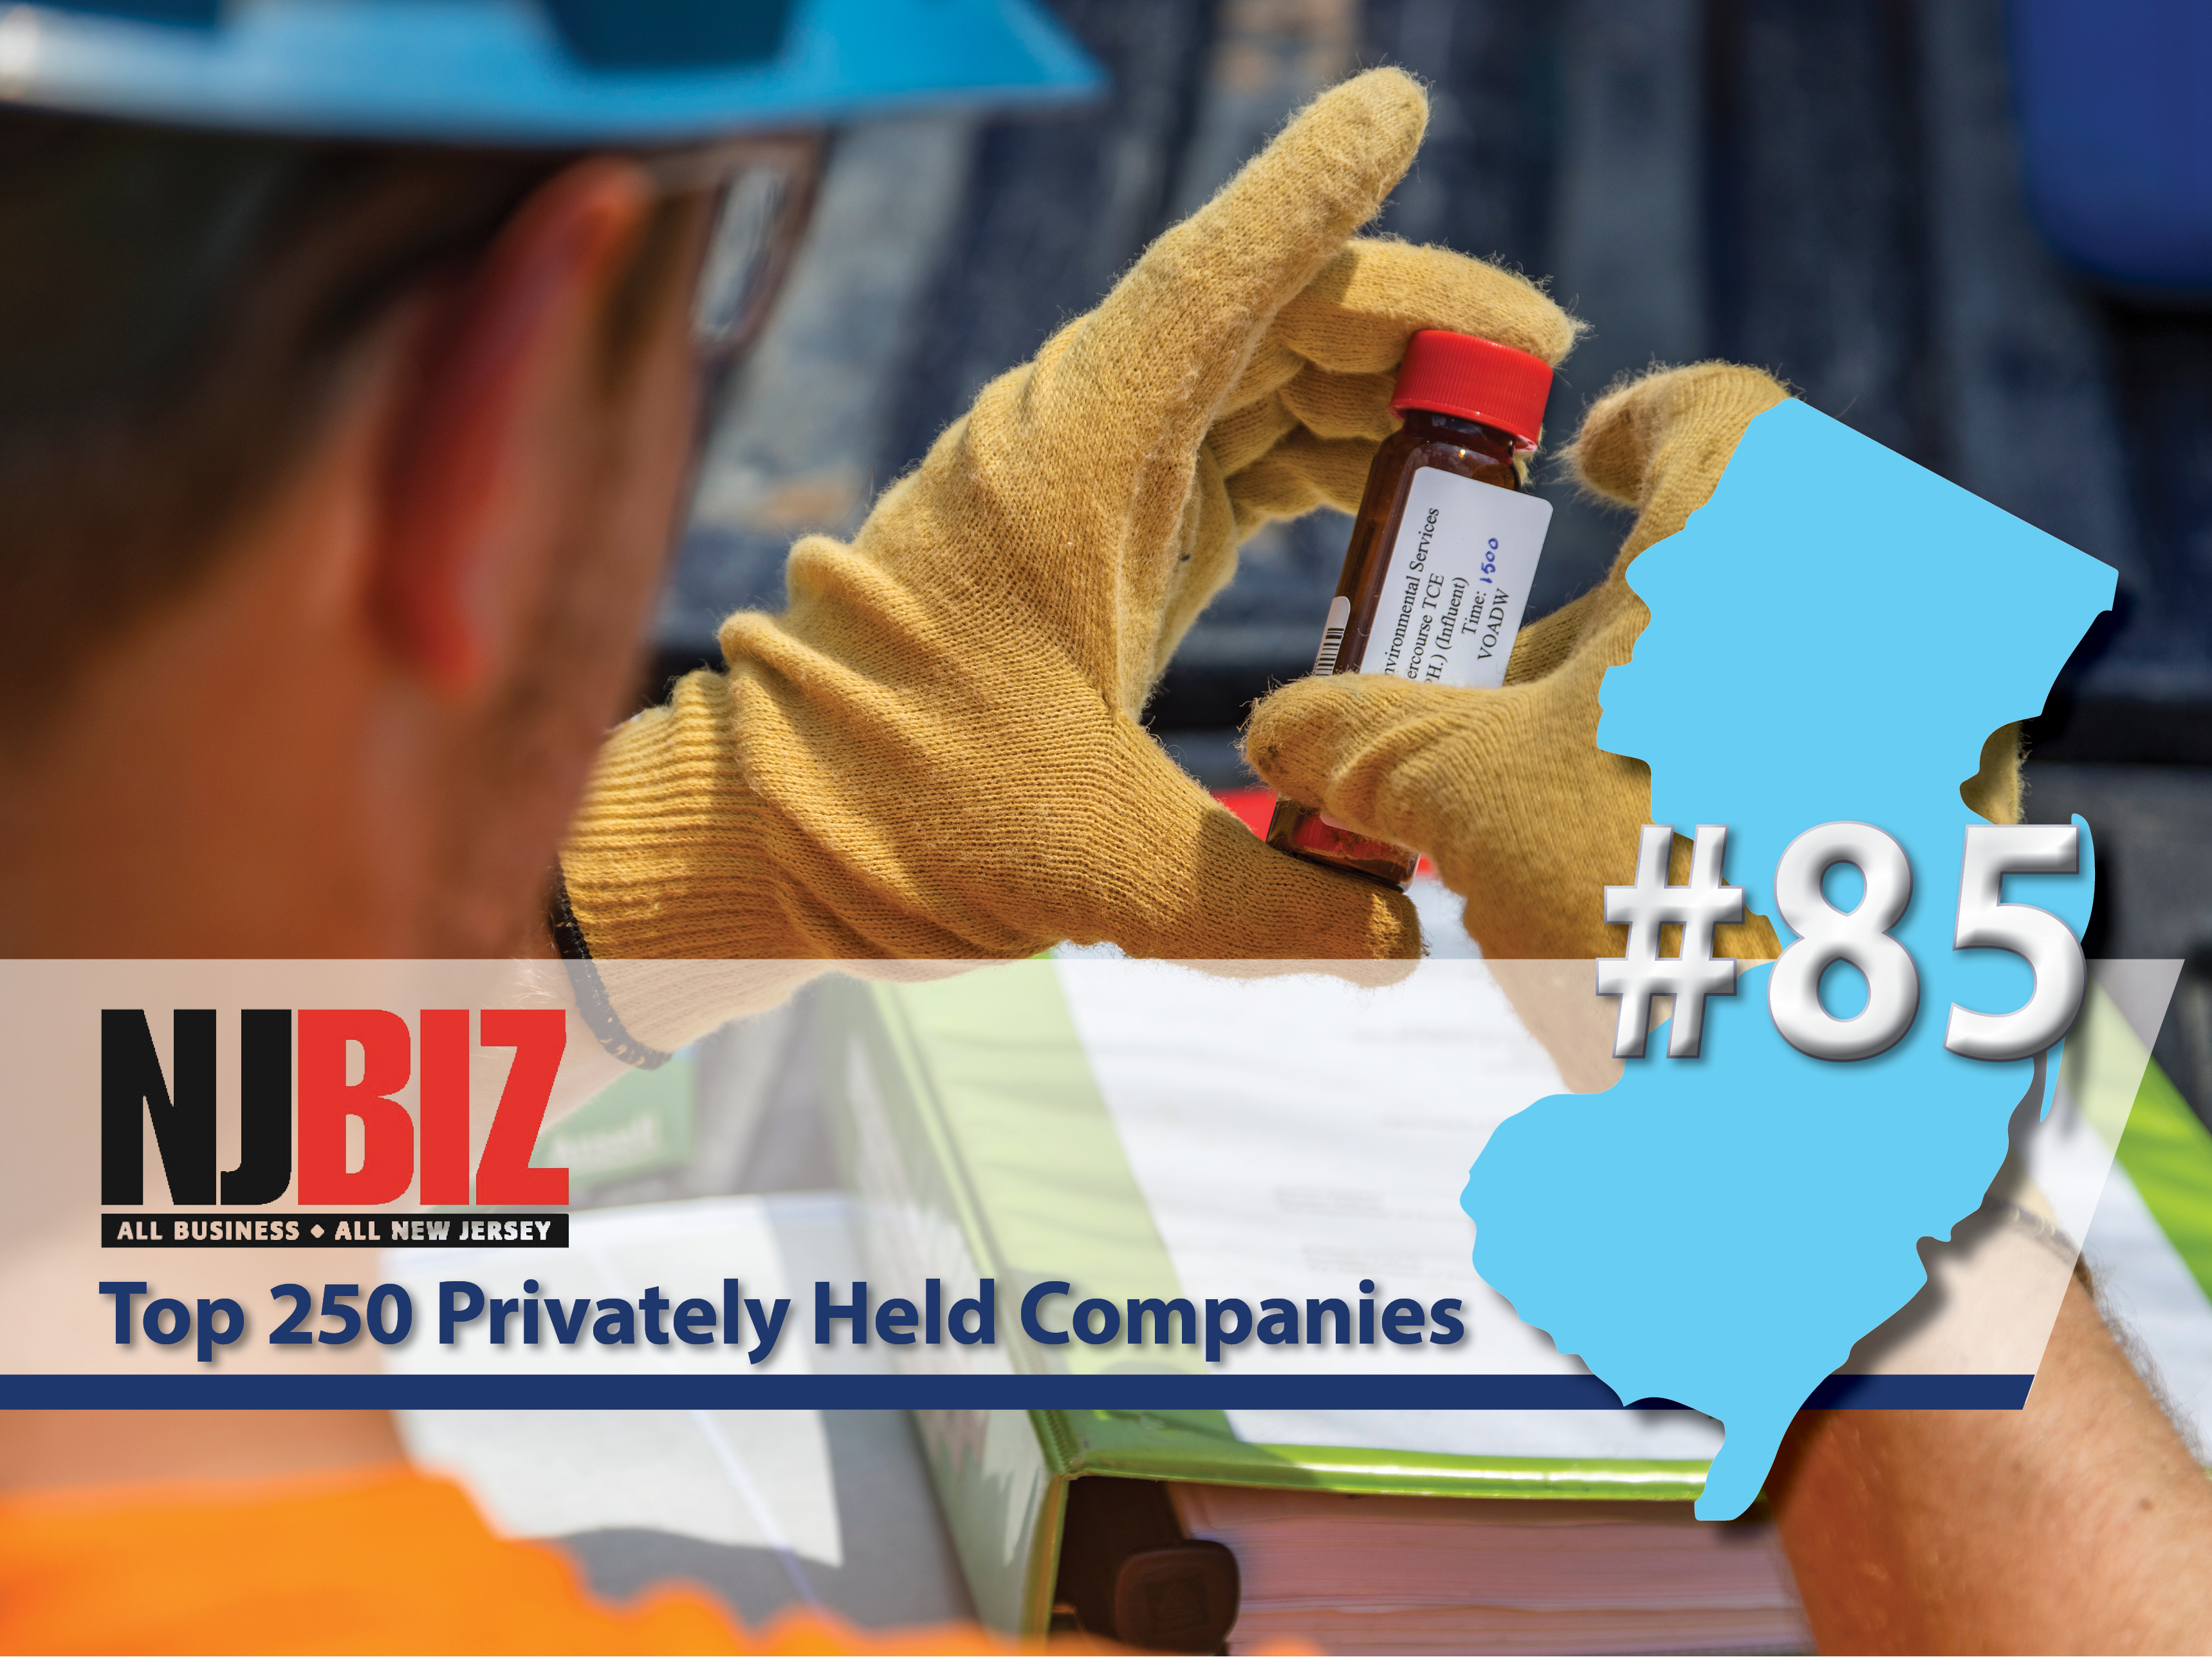 NJBIZ Top Privately Held Companies Graphic - GES 85